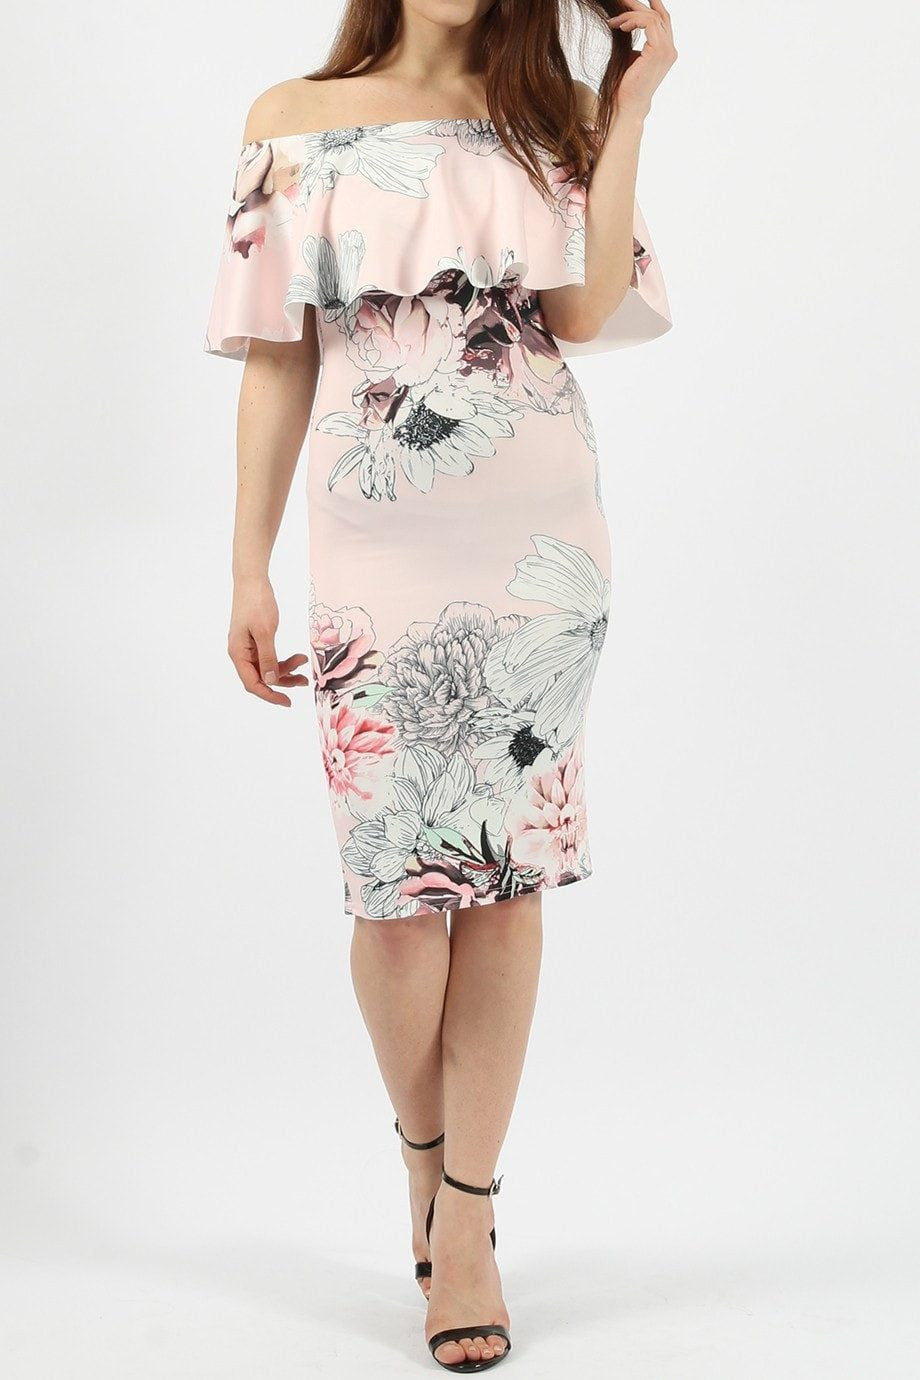 Sonya Frill Floral Dress - Budget Babe Couture